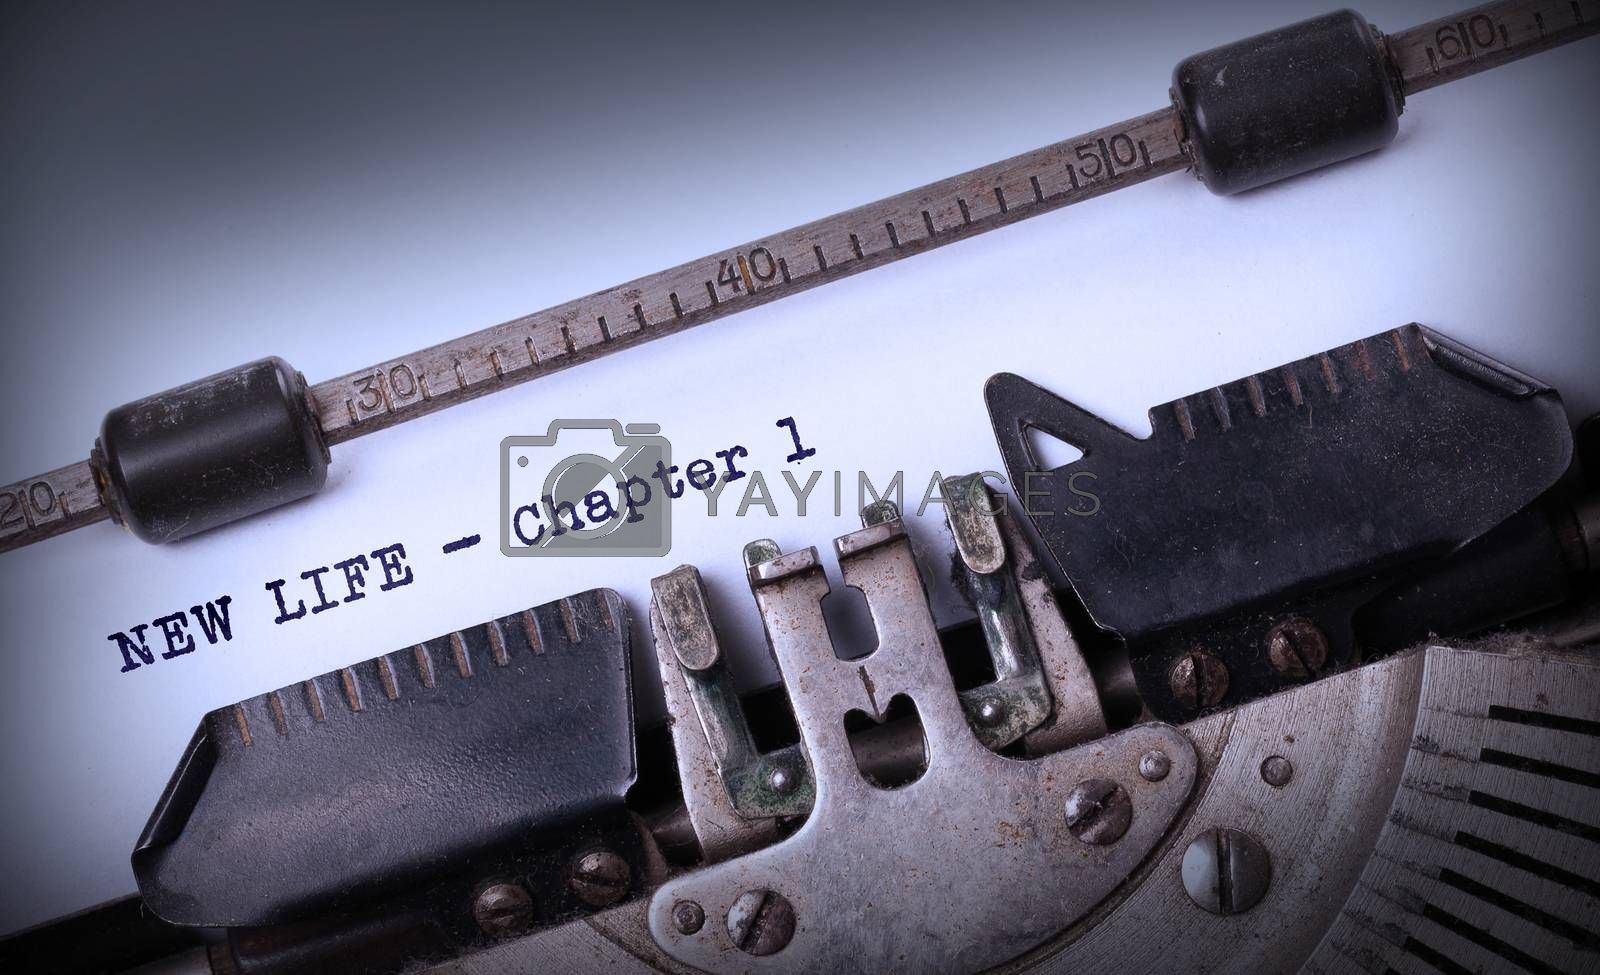 Vintage inscription made by old typewriter, NEW LIFE - Chapter 1